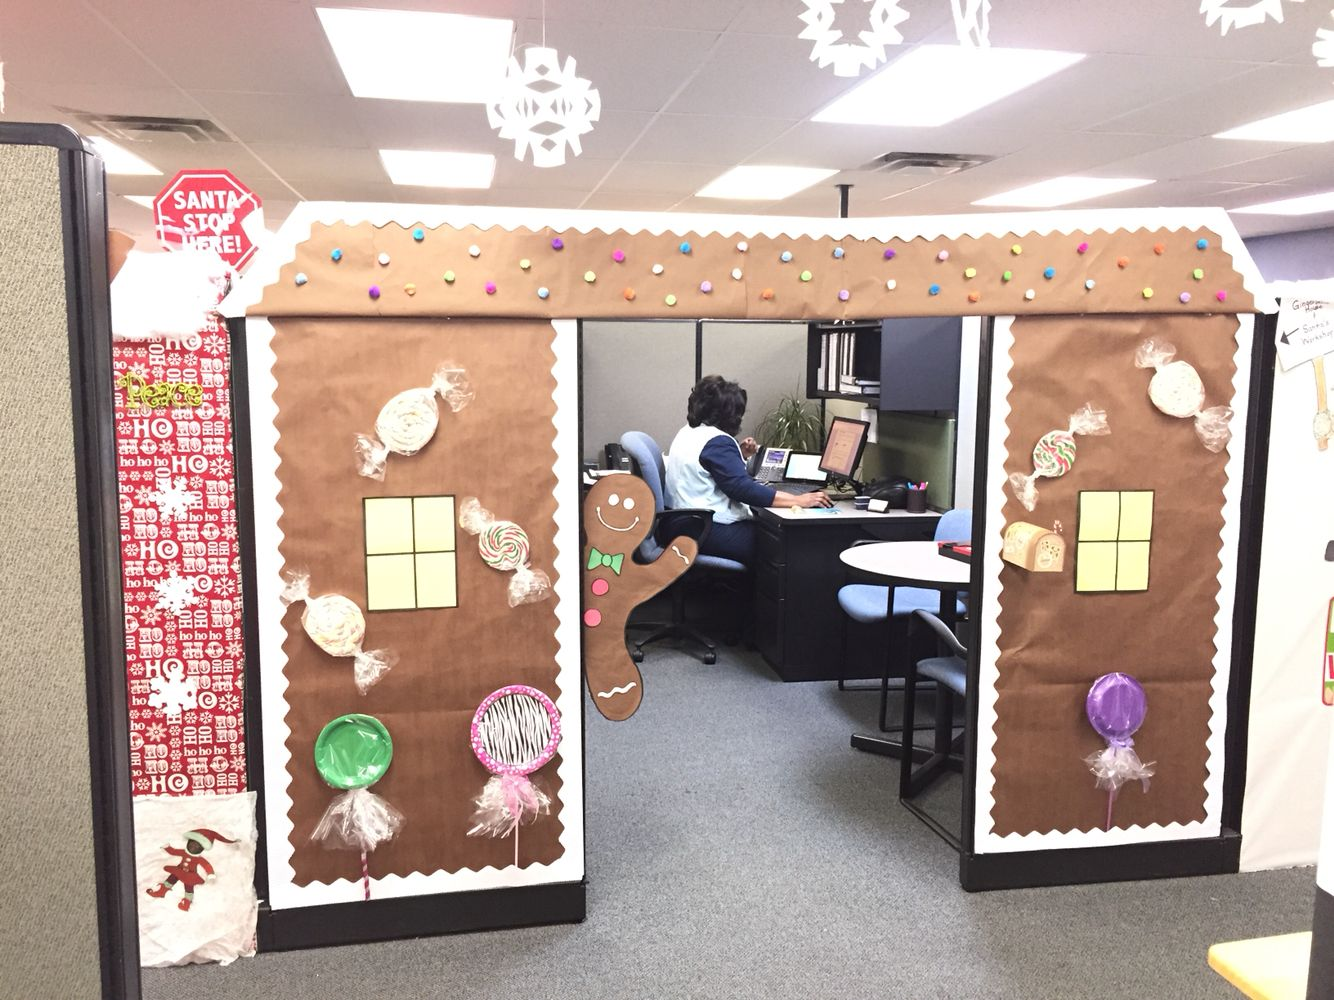 Gingerbread House Office Christmas Decorations Christmas Cubicle Decorations Christmas Desk Decorations